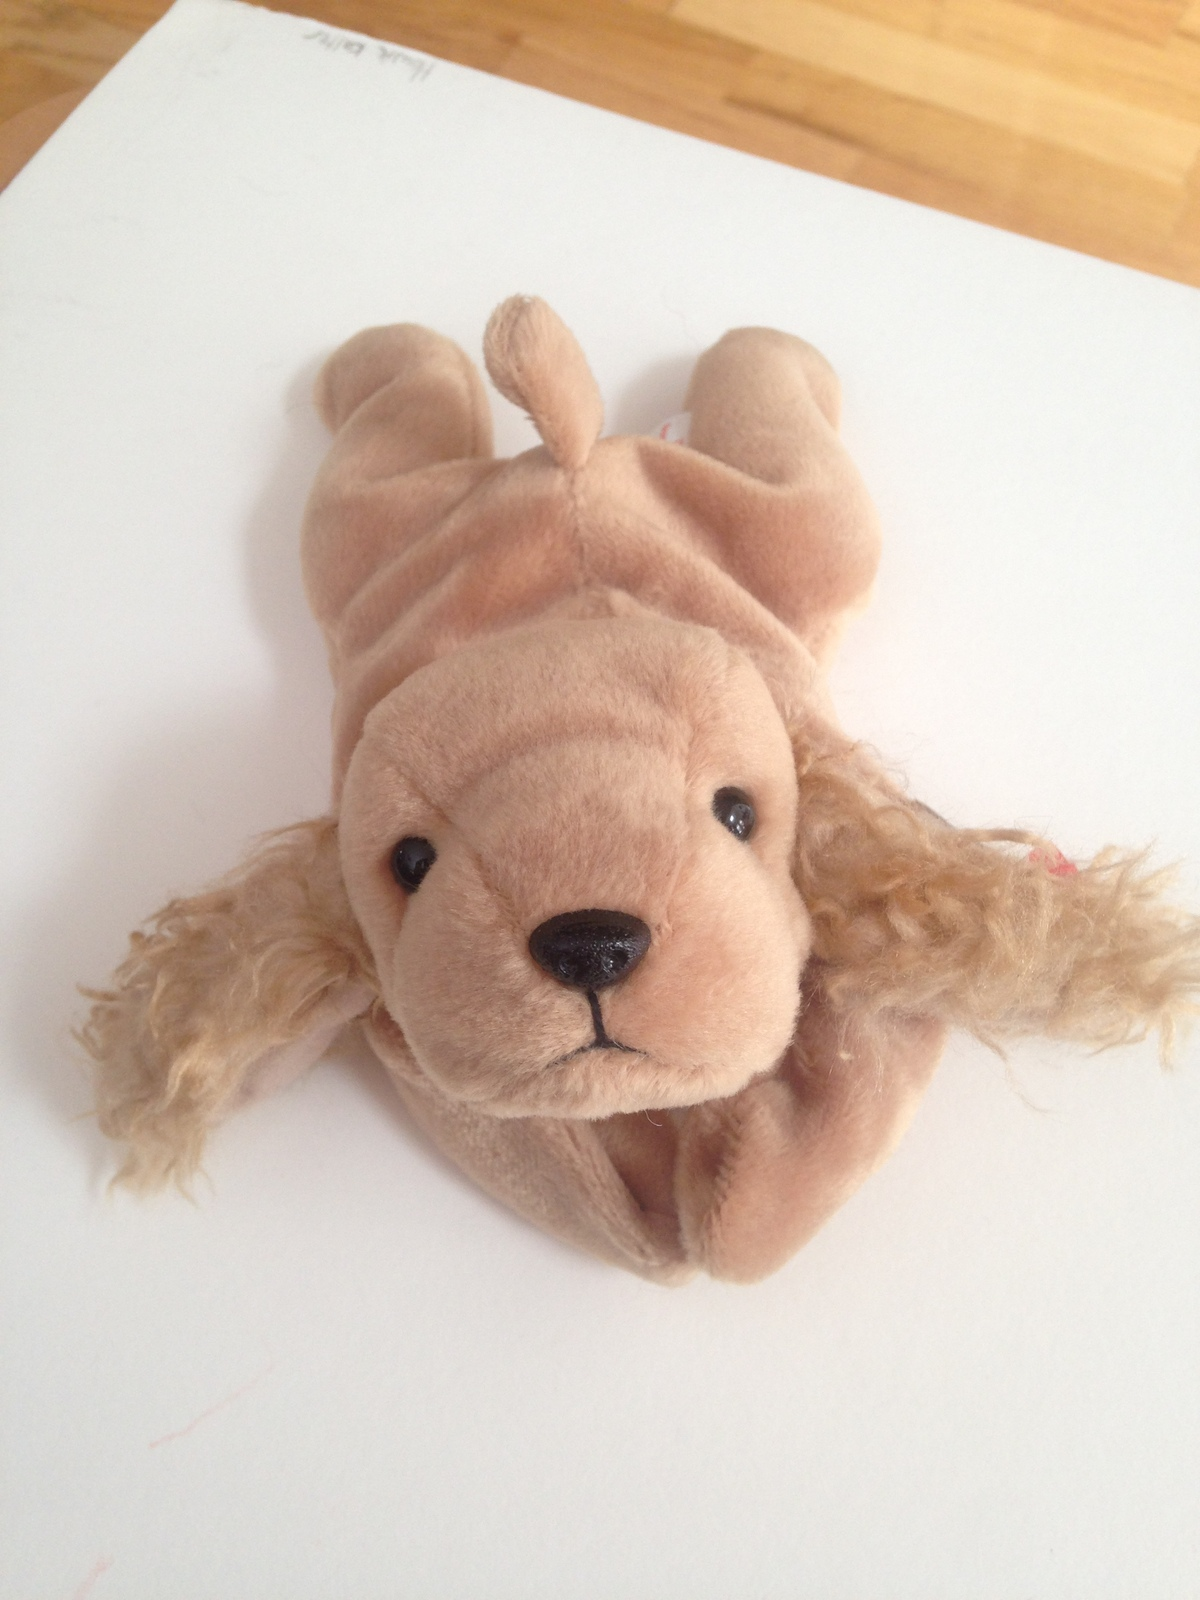 78b9902ac18 Spunky Beanie Baby Retired 1997 and 50 similar items. Img 6215